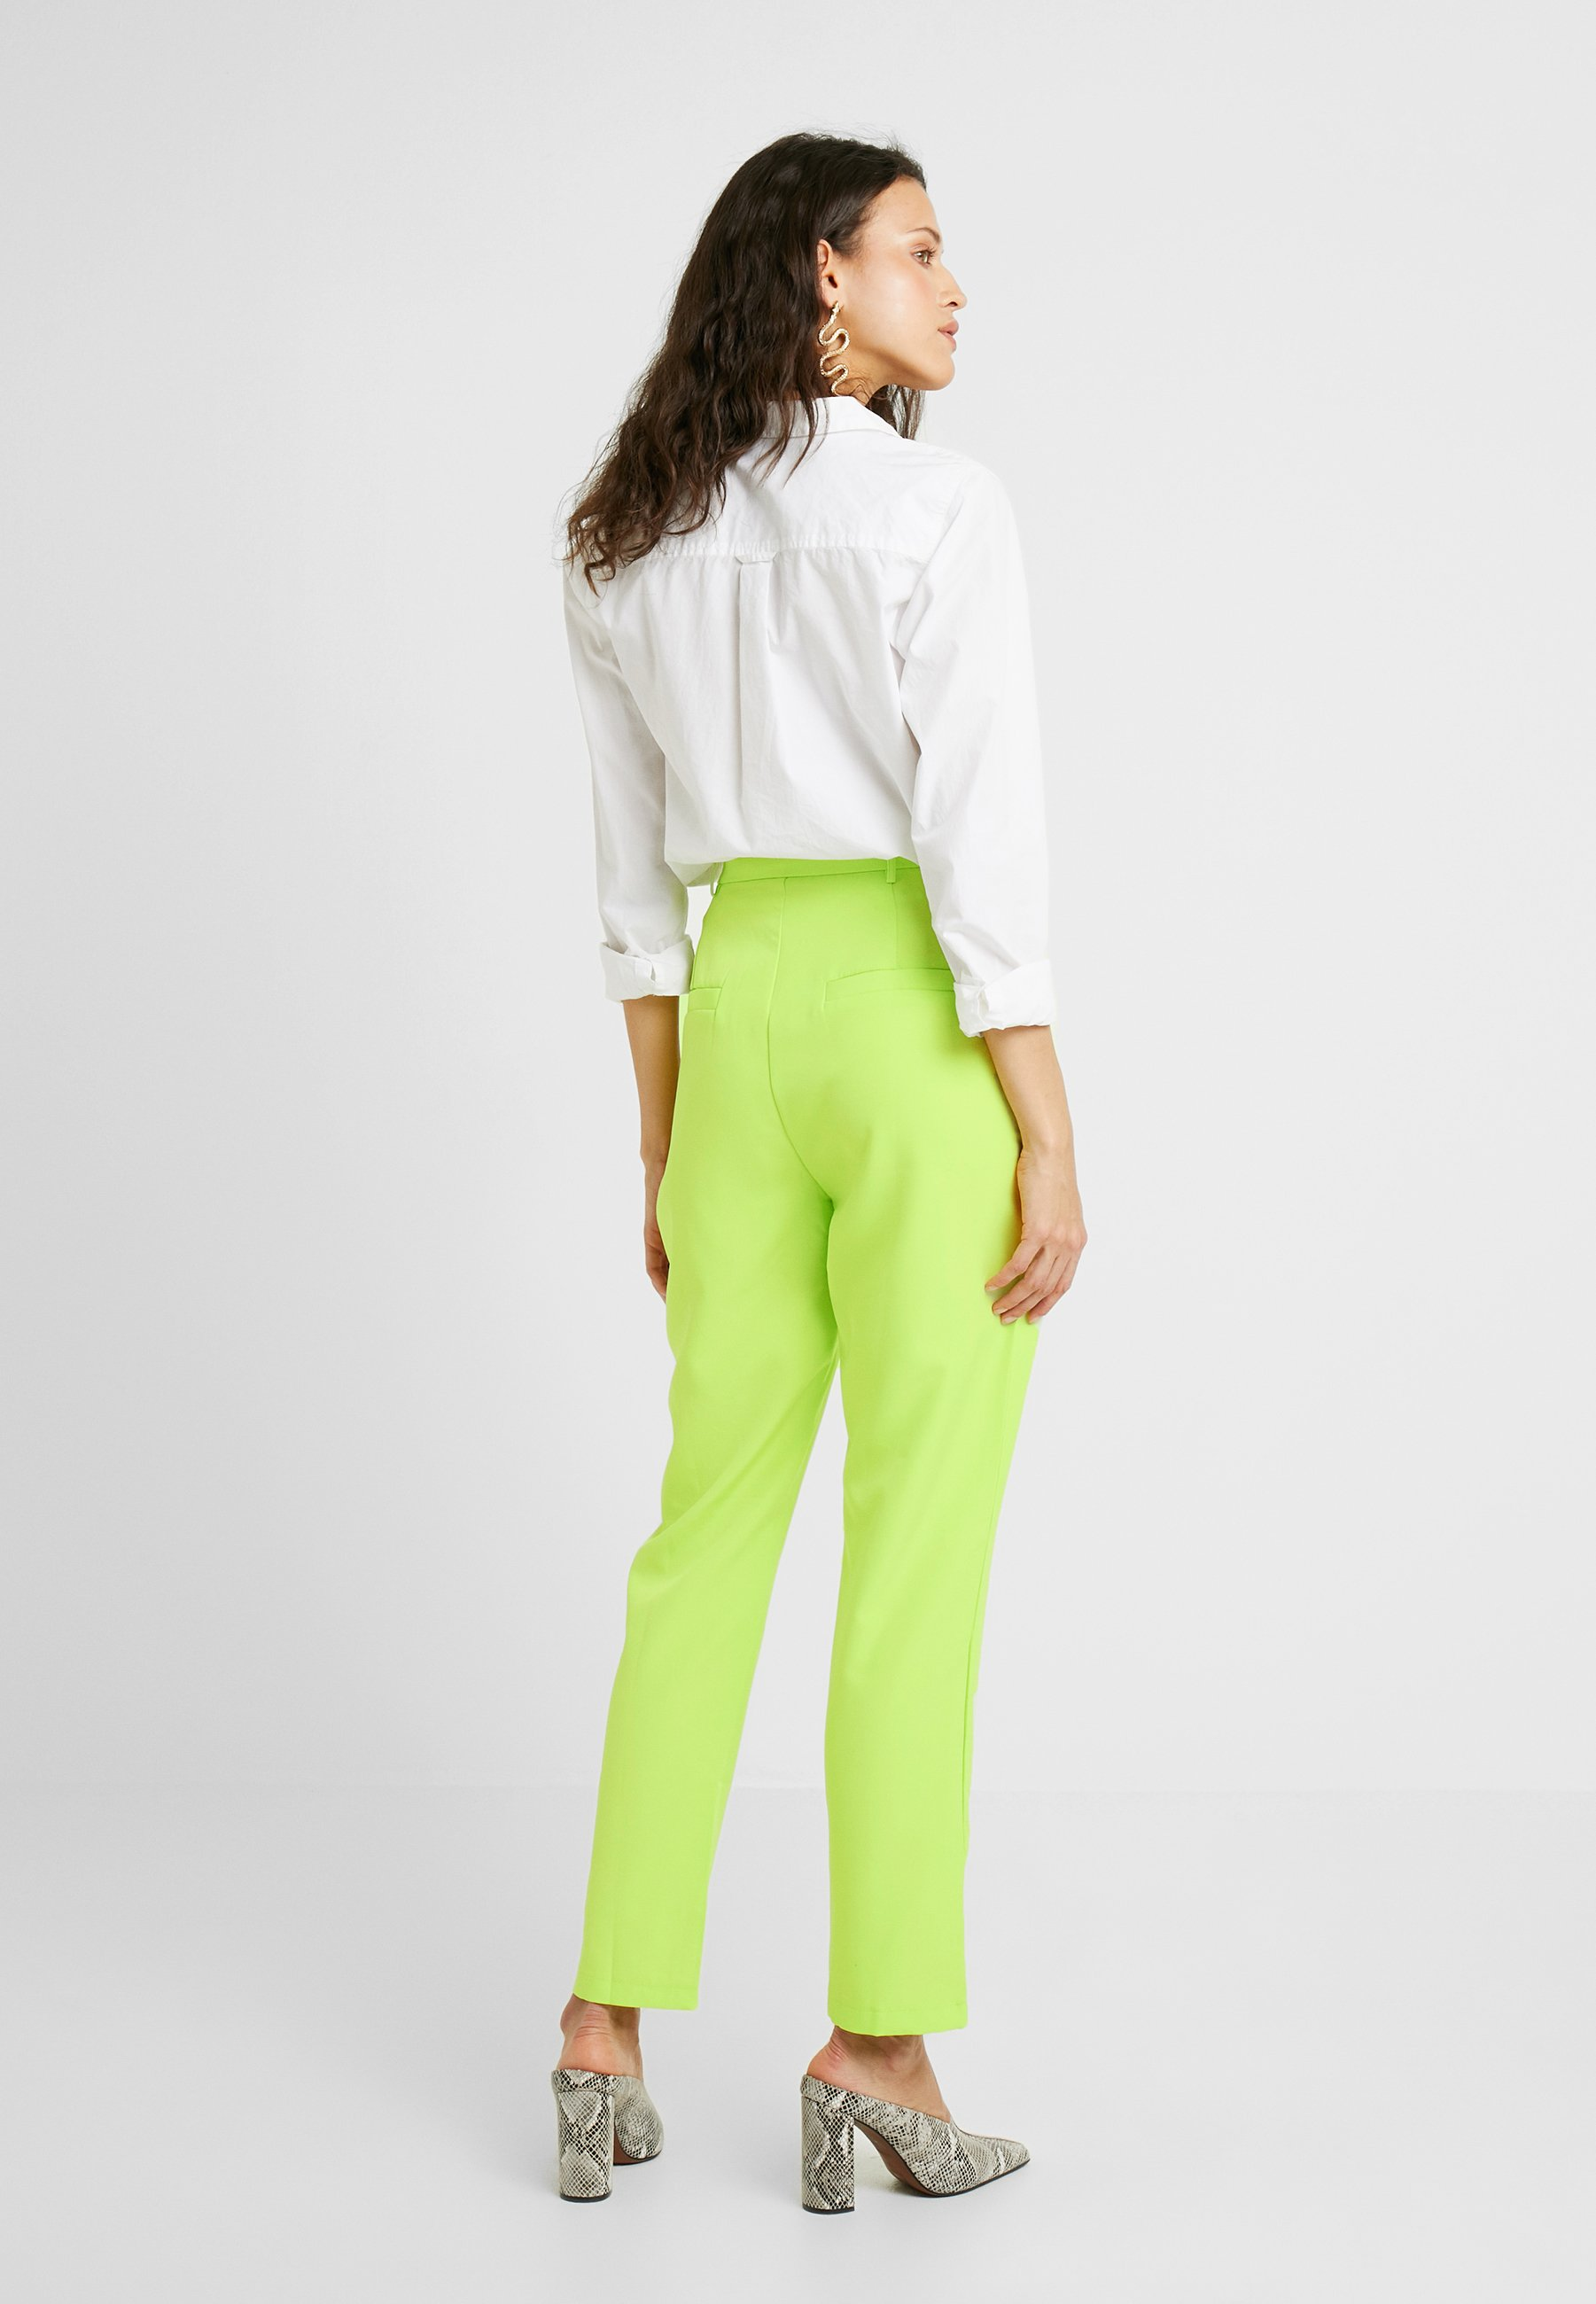 Tall Classique High TrousersPantalon Green Waisted Neon Leg Missguided cTlKJ1F